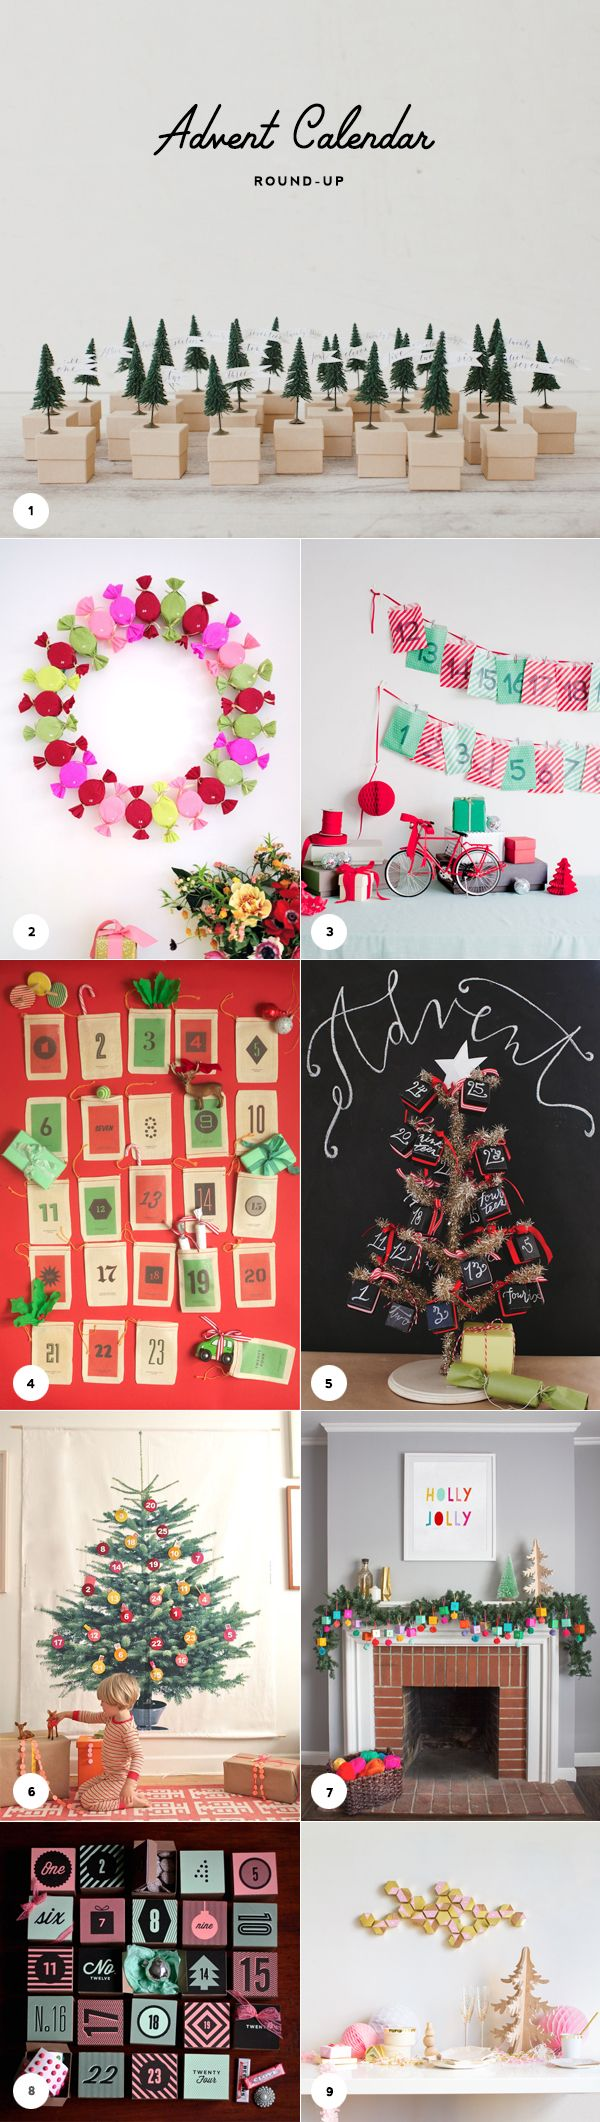 There are only 6 more days until December 1! Have you created your advent calendar yet? Here's a round-up of some of our favorites…   1. Mini Tree Advent Calendar 2. Bonbon Advent Wreath 3. Treat Bag